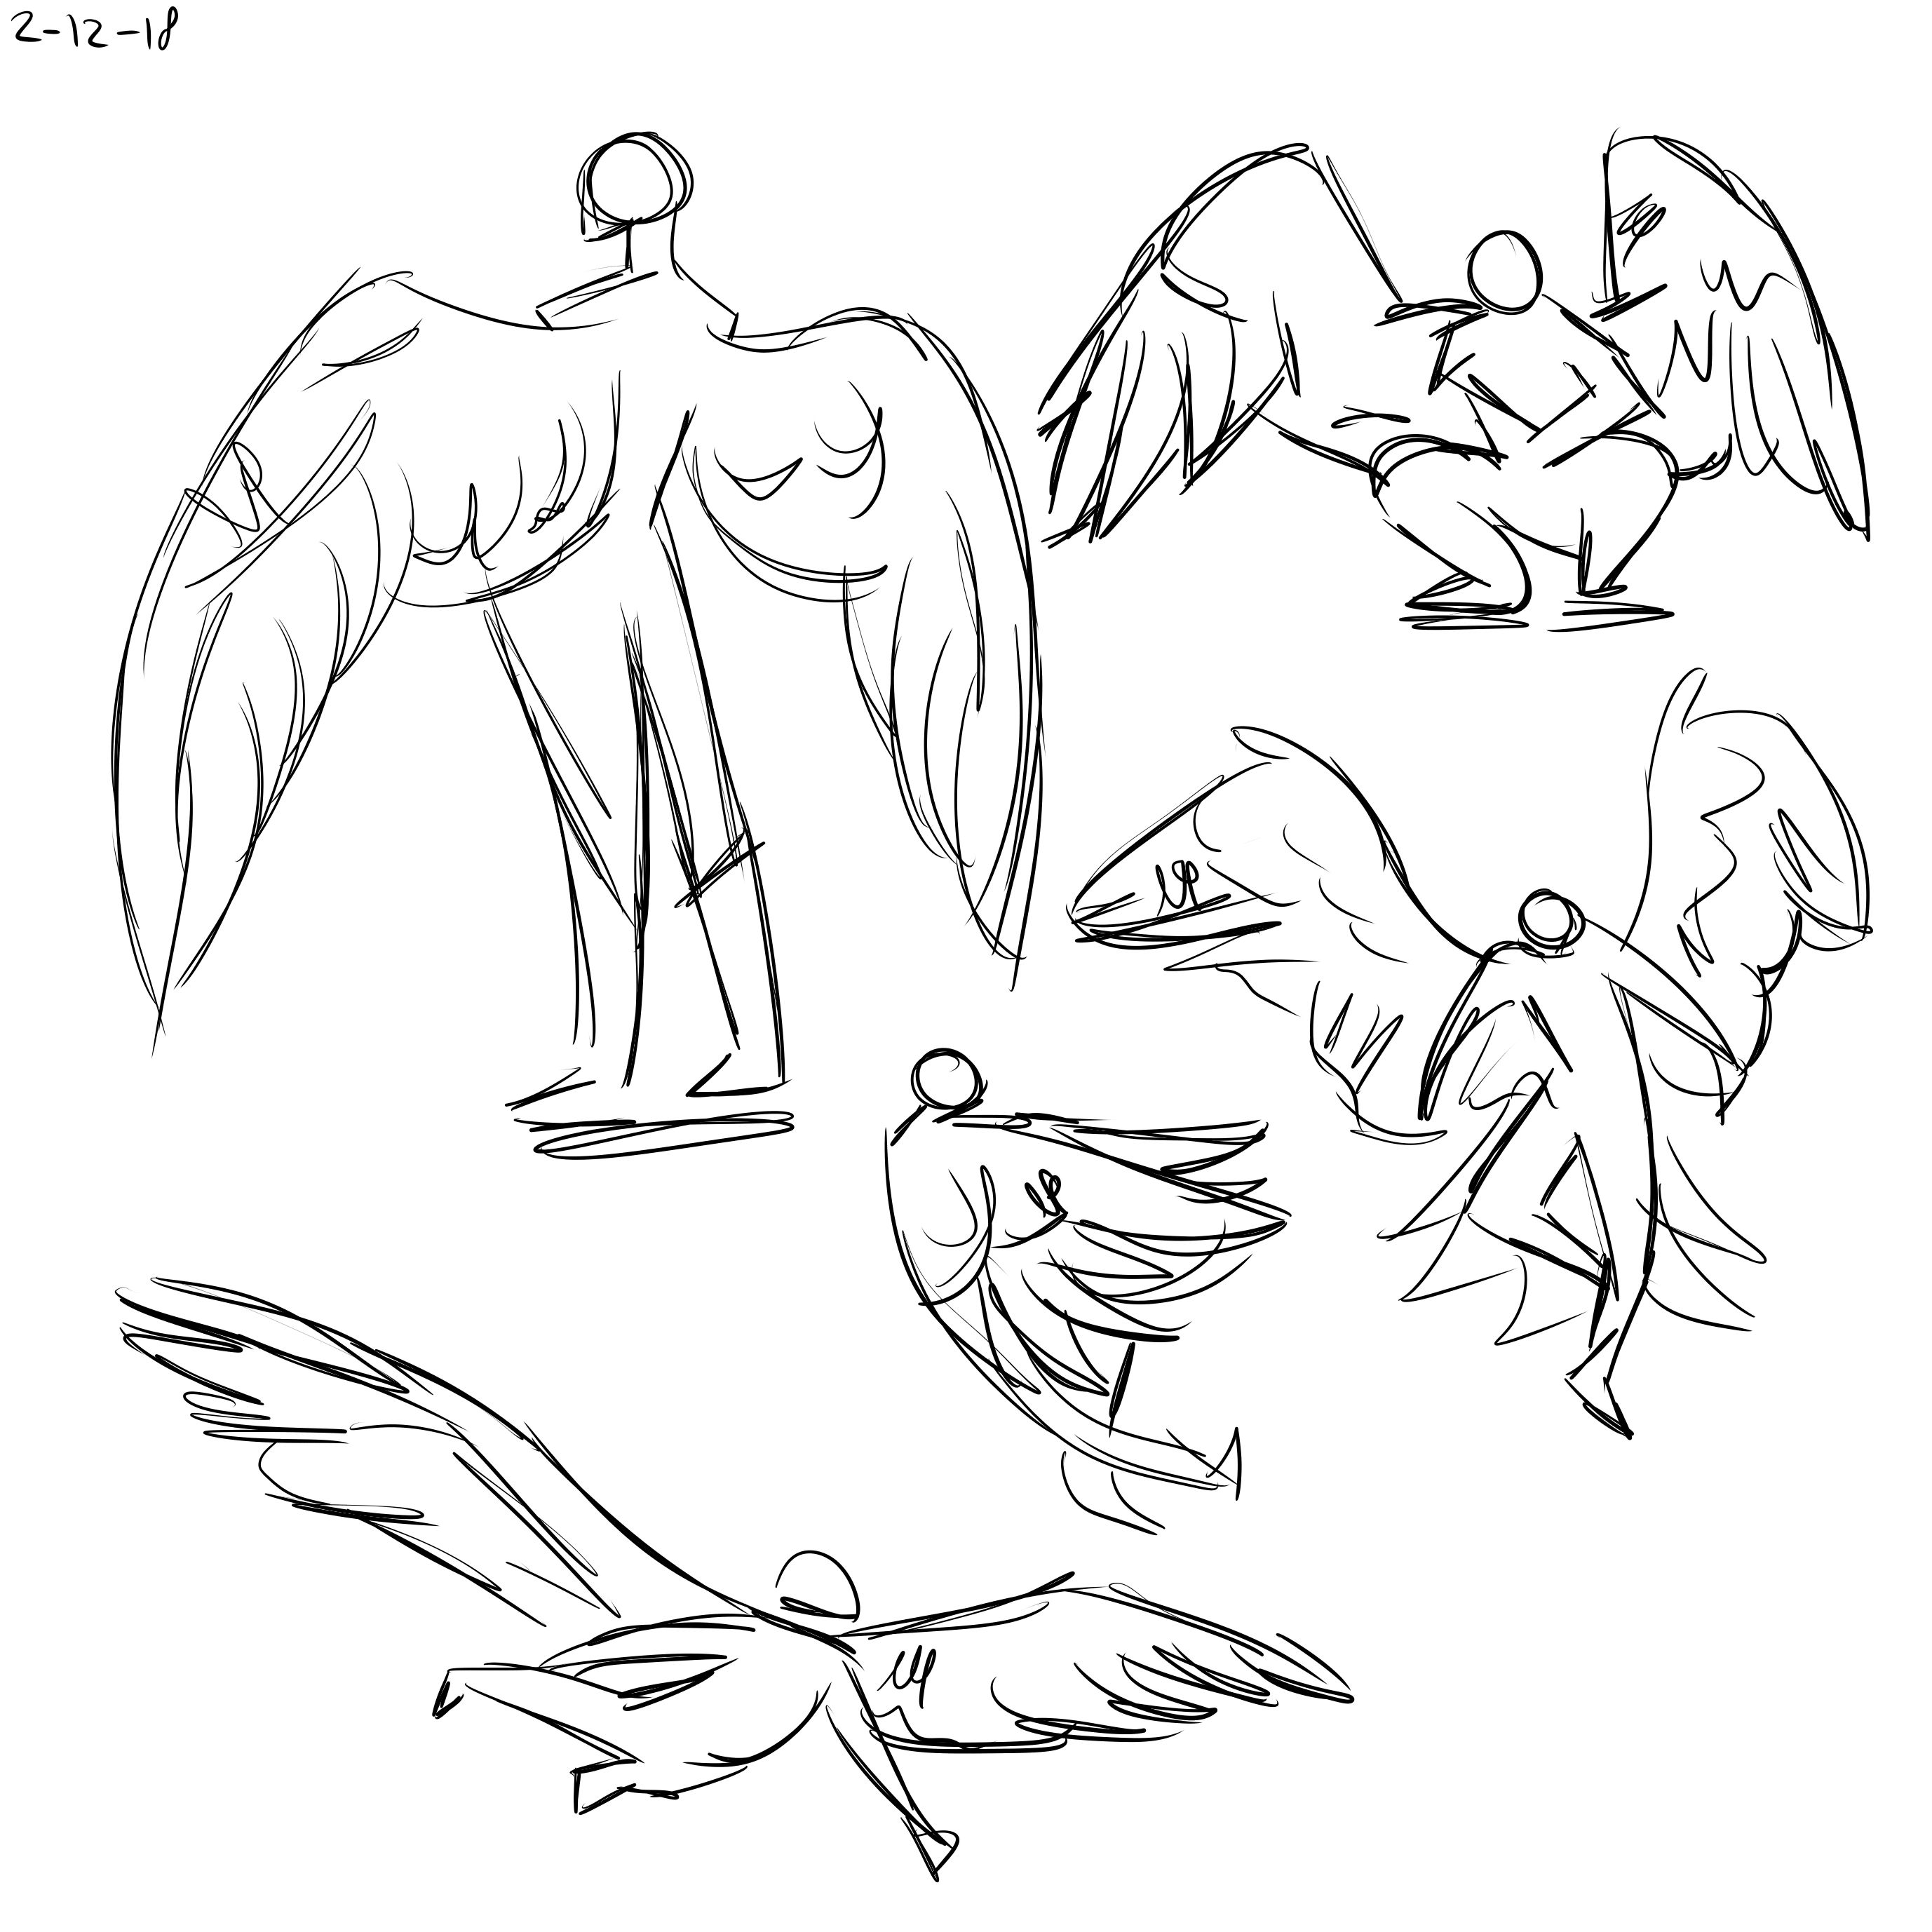 Drawn By Nathalie H Sketch Male Angel Angel Sketch Fly Drawing Sketches